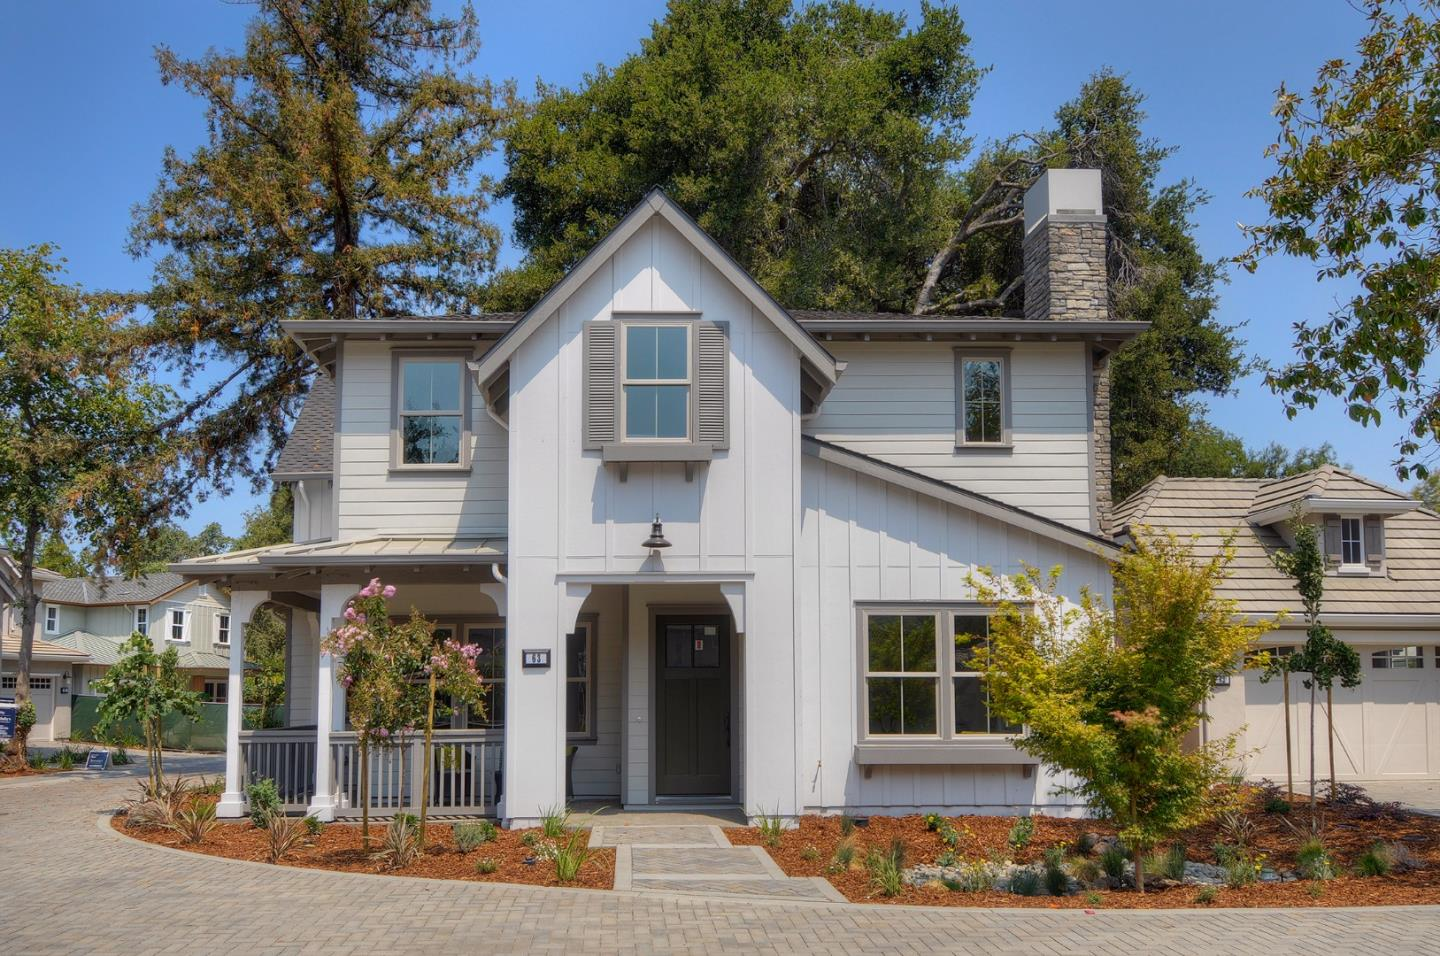 Single Family Home for Sale at 63 Liberty Hall Lane 63 Liberty Hall Lane Redwood City, California 94062 United States